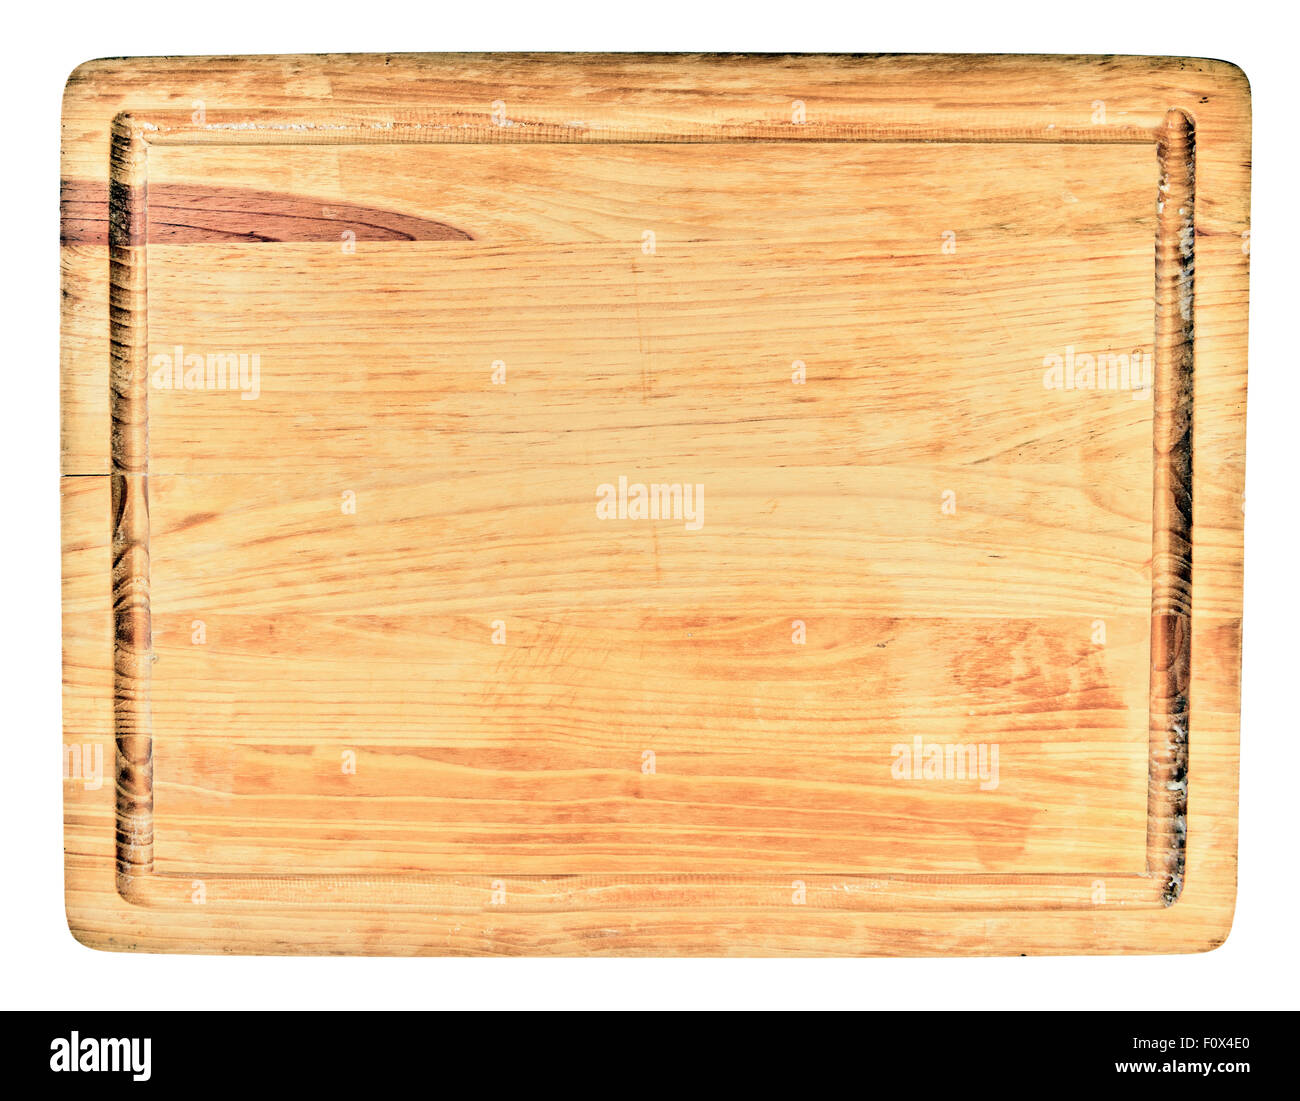 wooden cutting board on white background - Stock Image